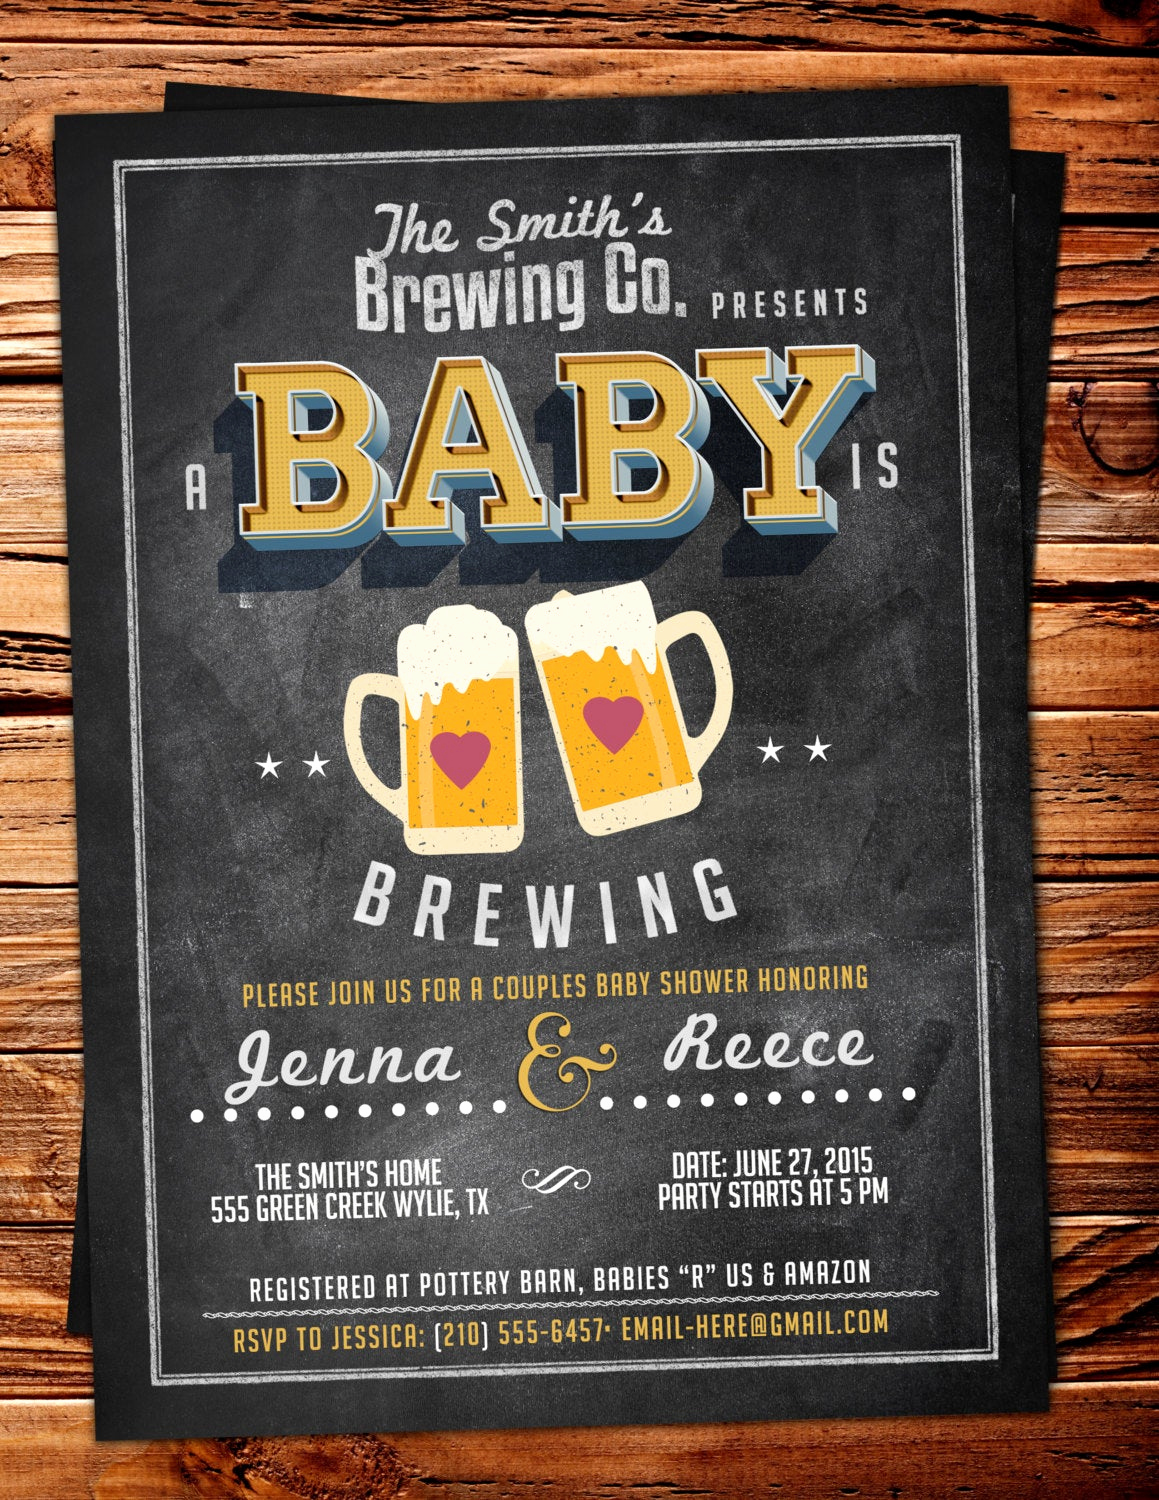 Coed Baby Shower Invitation Wording Awesome Baby is Brewing Coed Baby Shower Invitation Beer Baby Shower